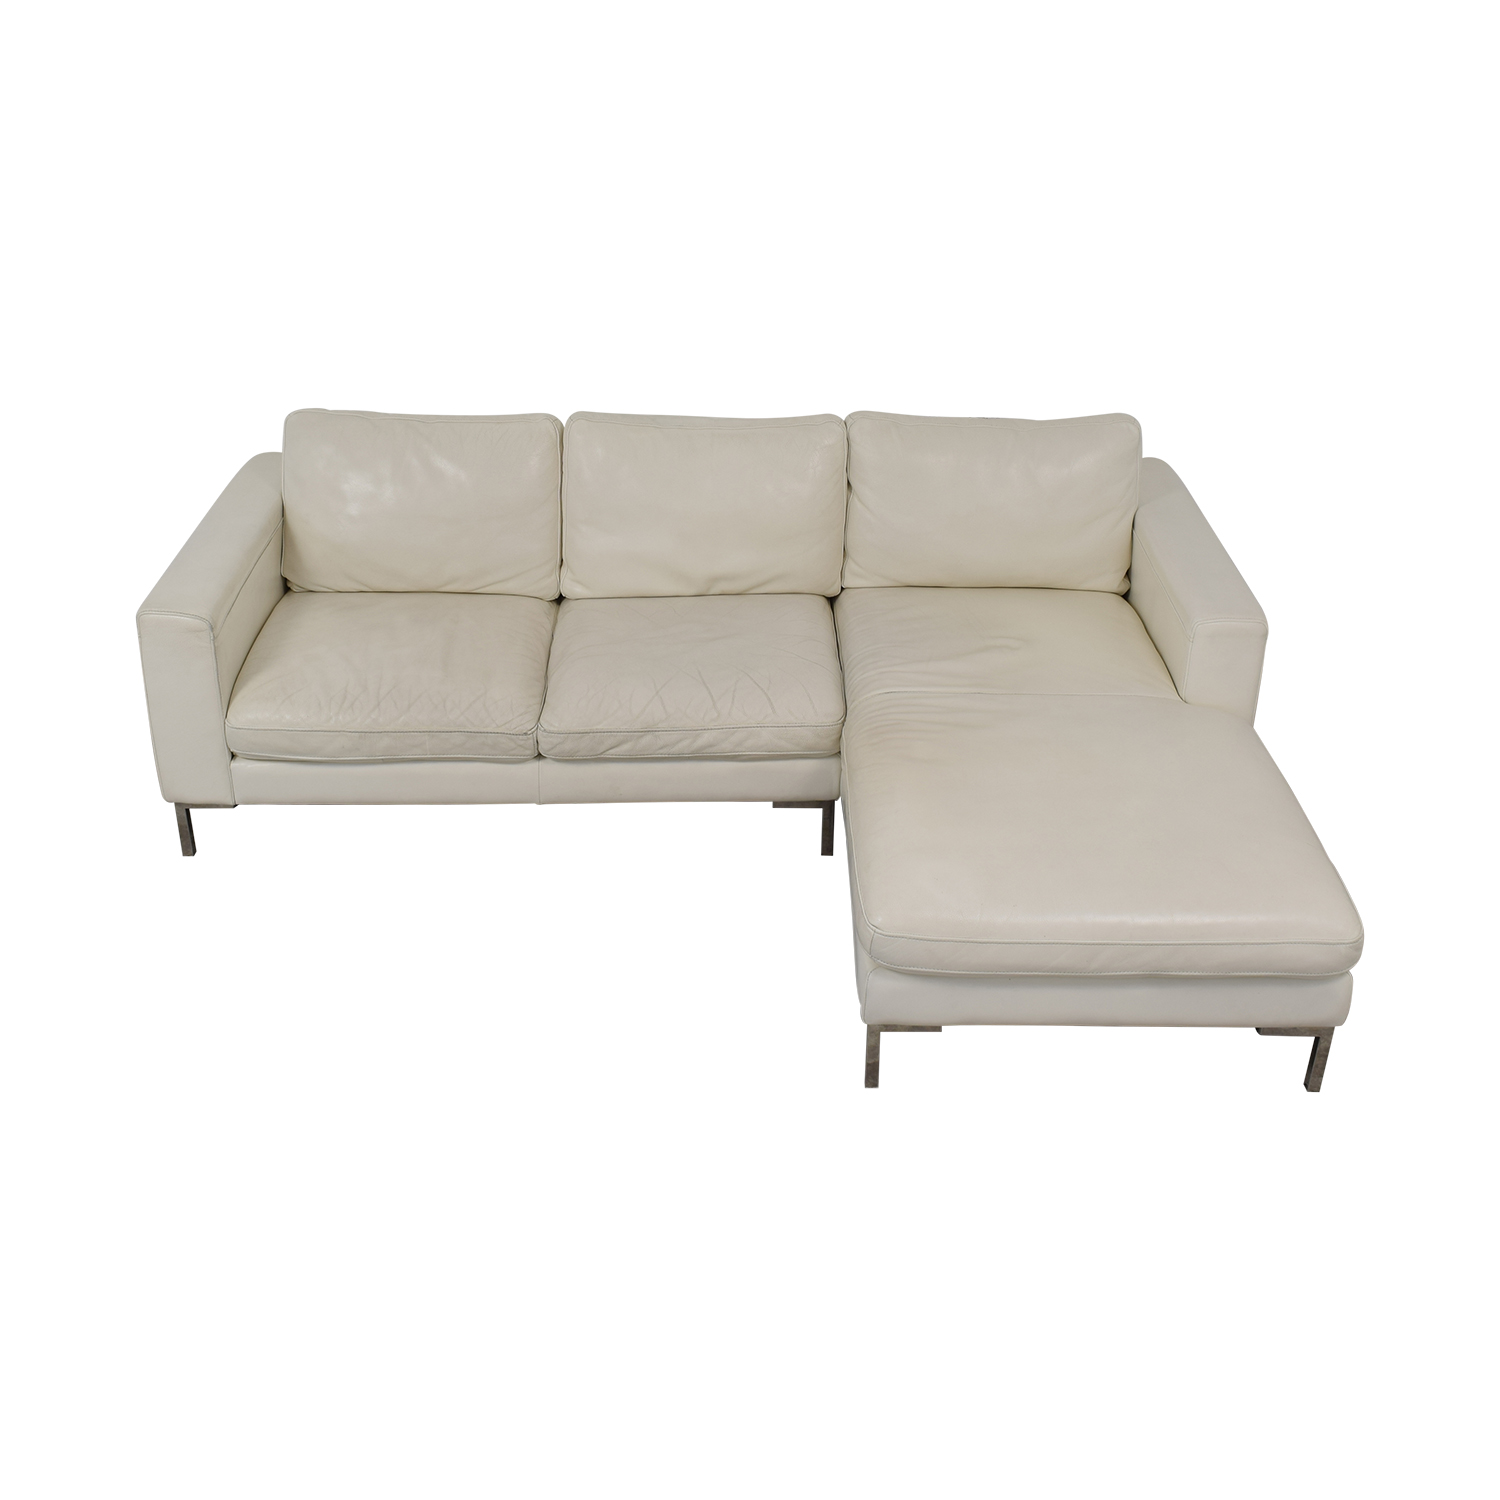 77% OFF - Modern Chaise Sectional Sofa / Sofas